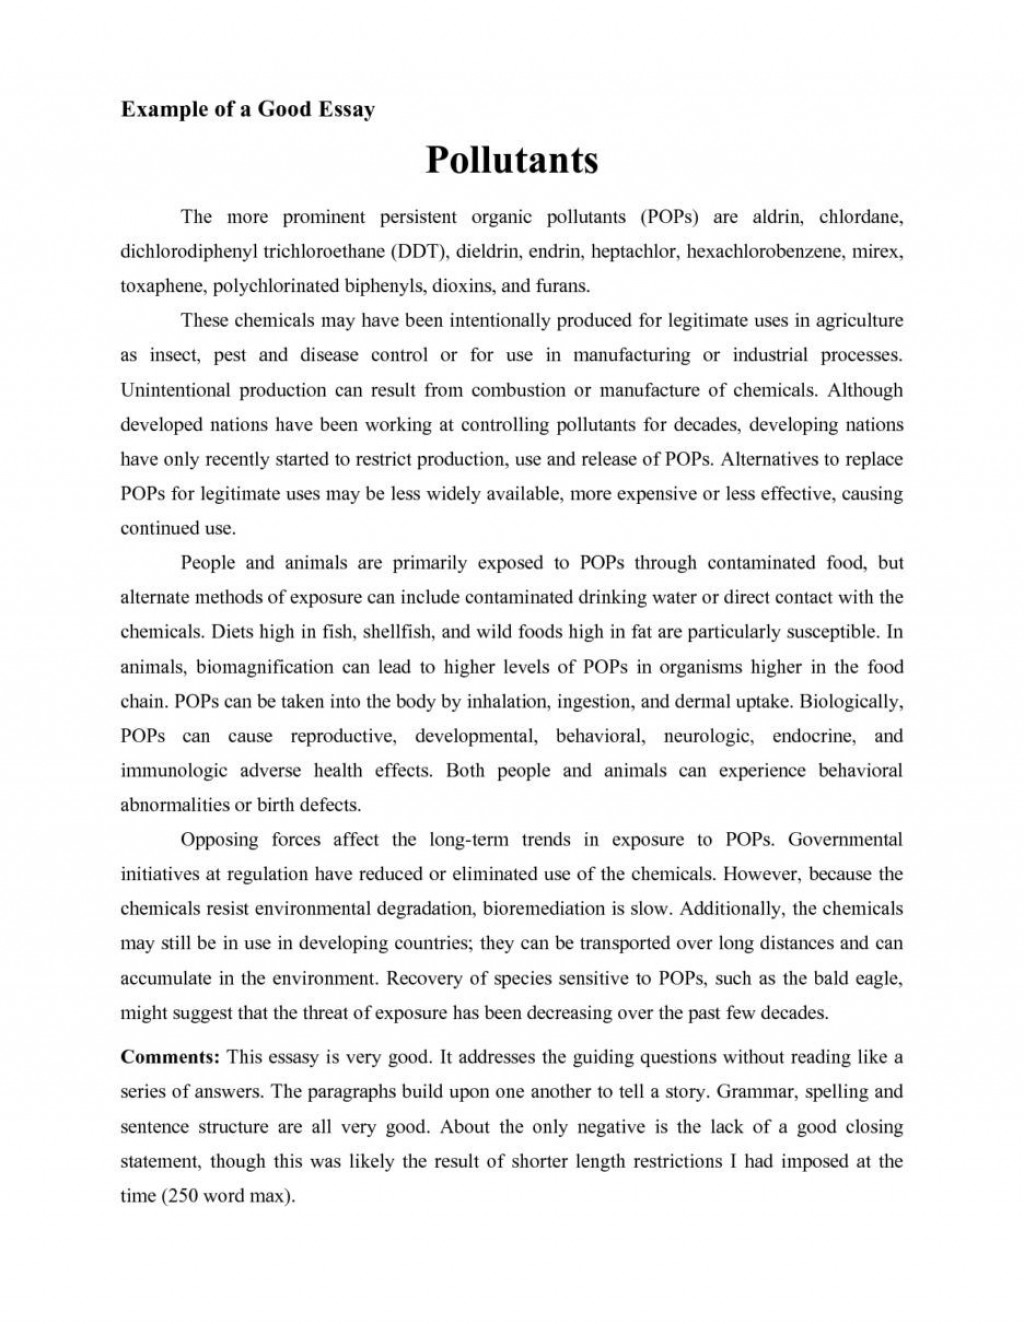 006 Essay Example Imposing Of Writing In Mla Format Hooks Outline About Education Large